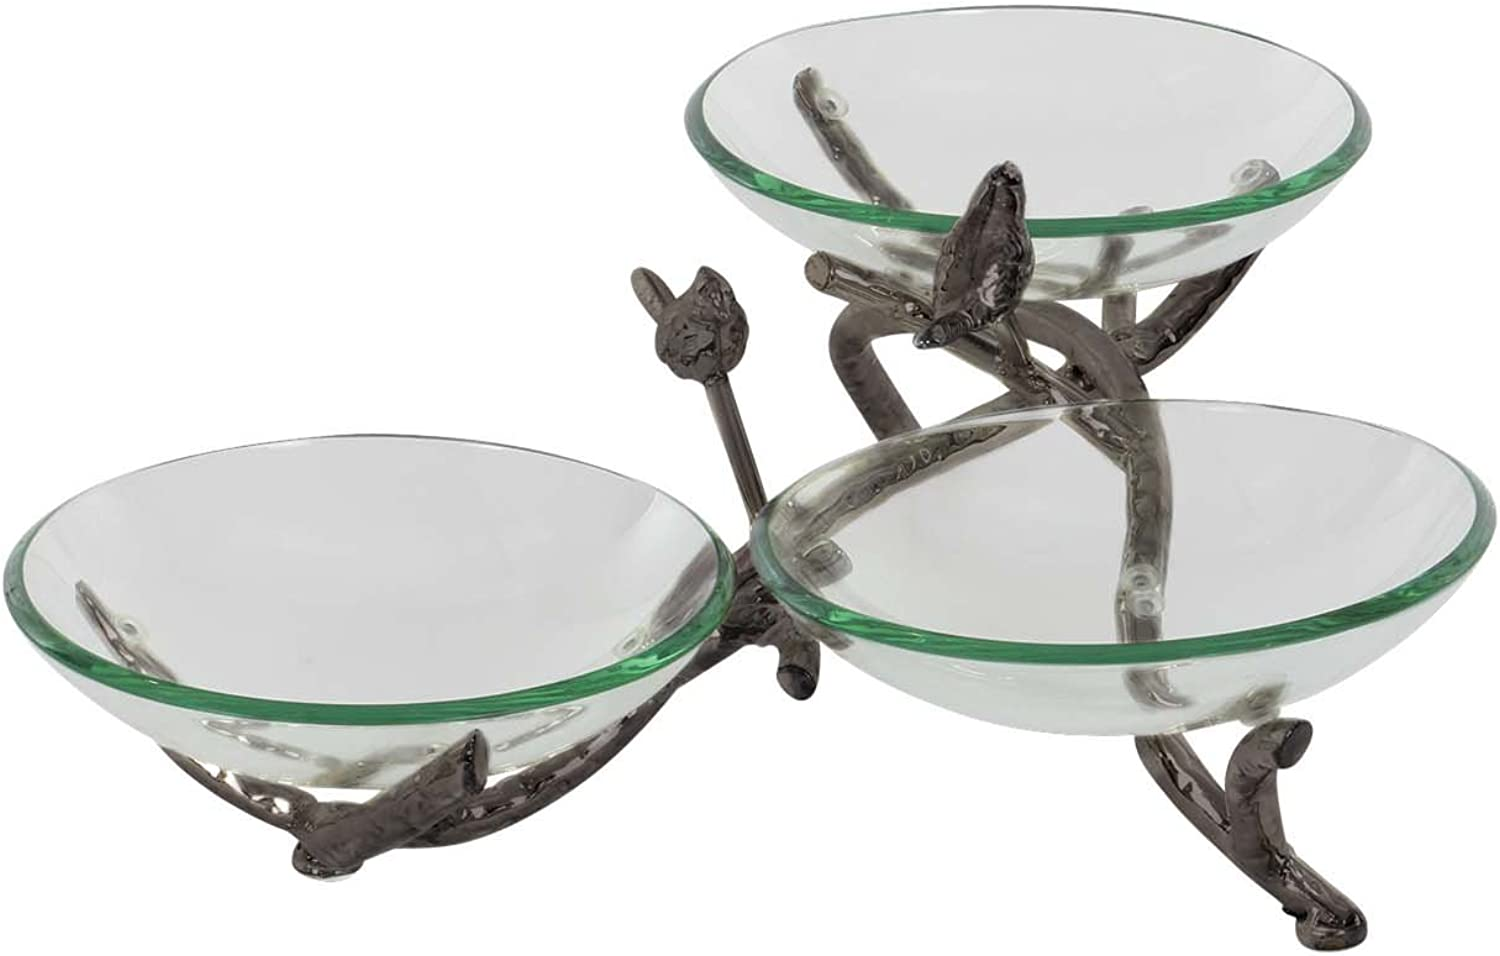 Deco 79 68583 Glass Triple Bowl with Iron Twig Holders and Stand, Black Green